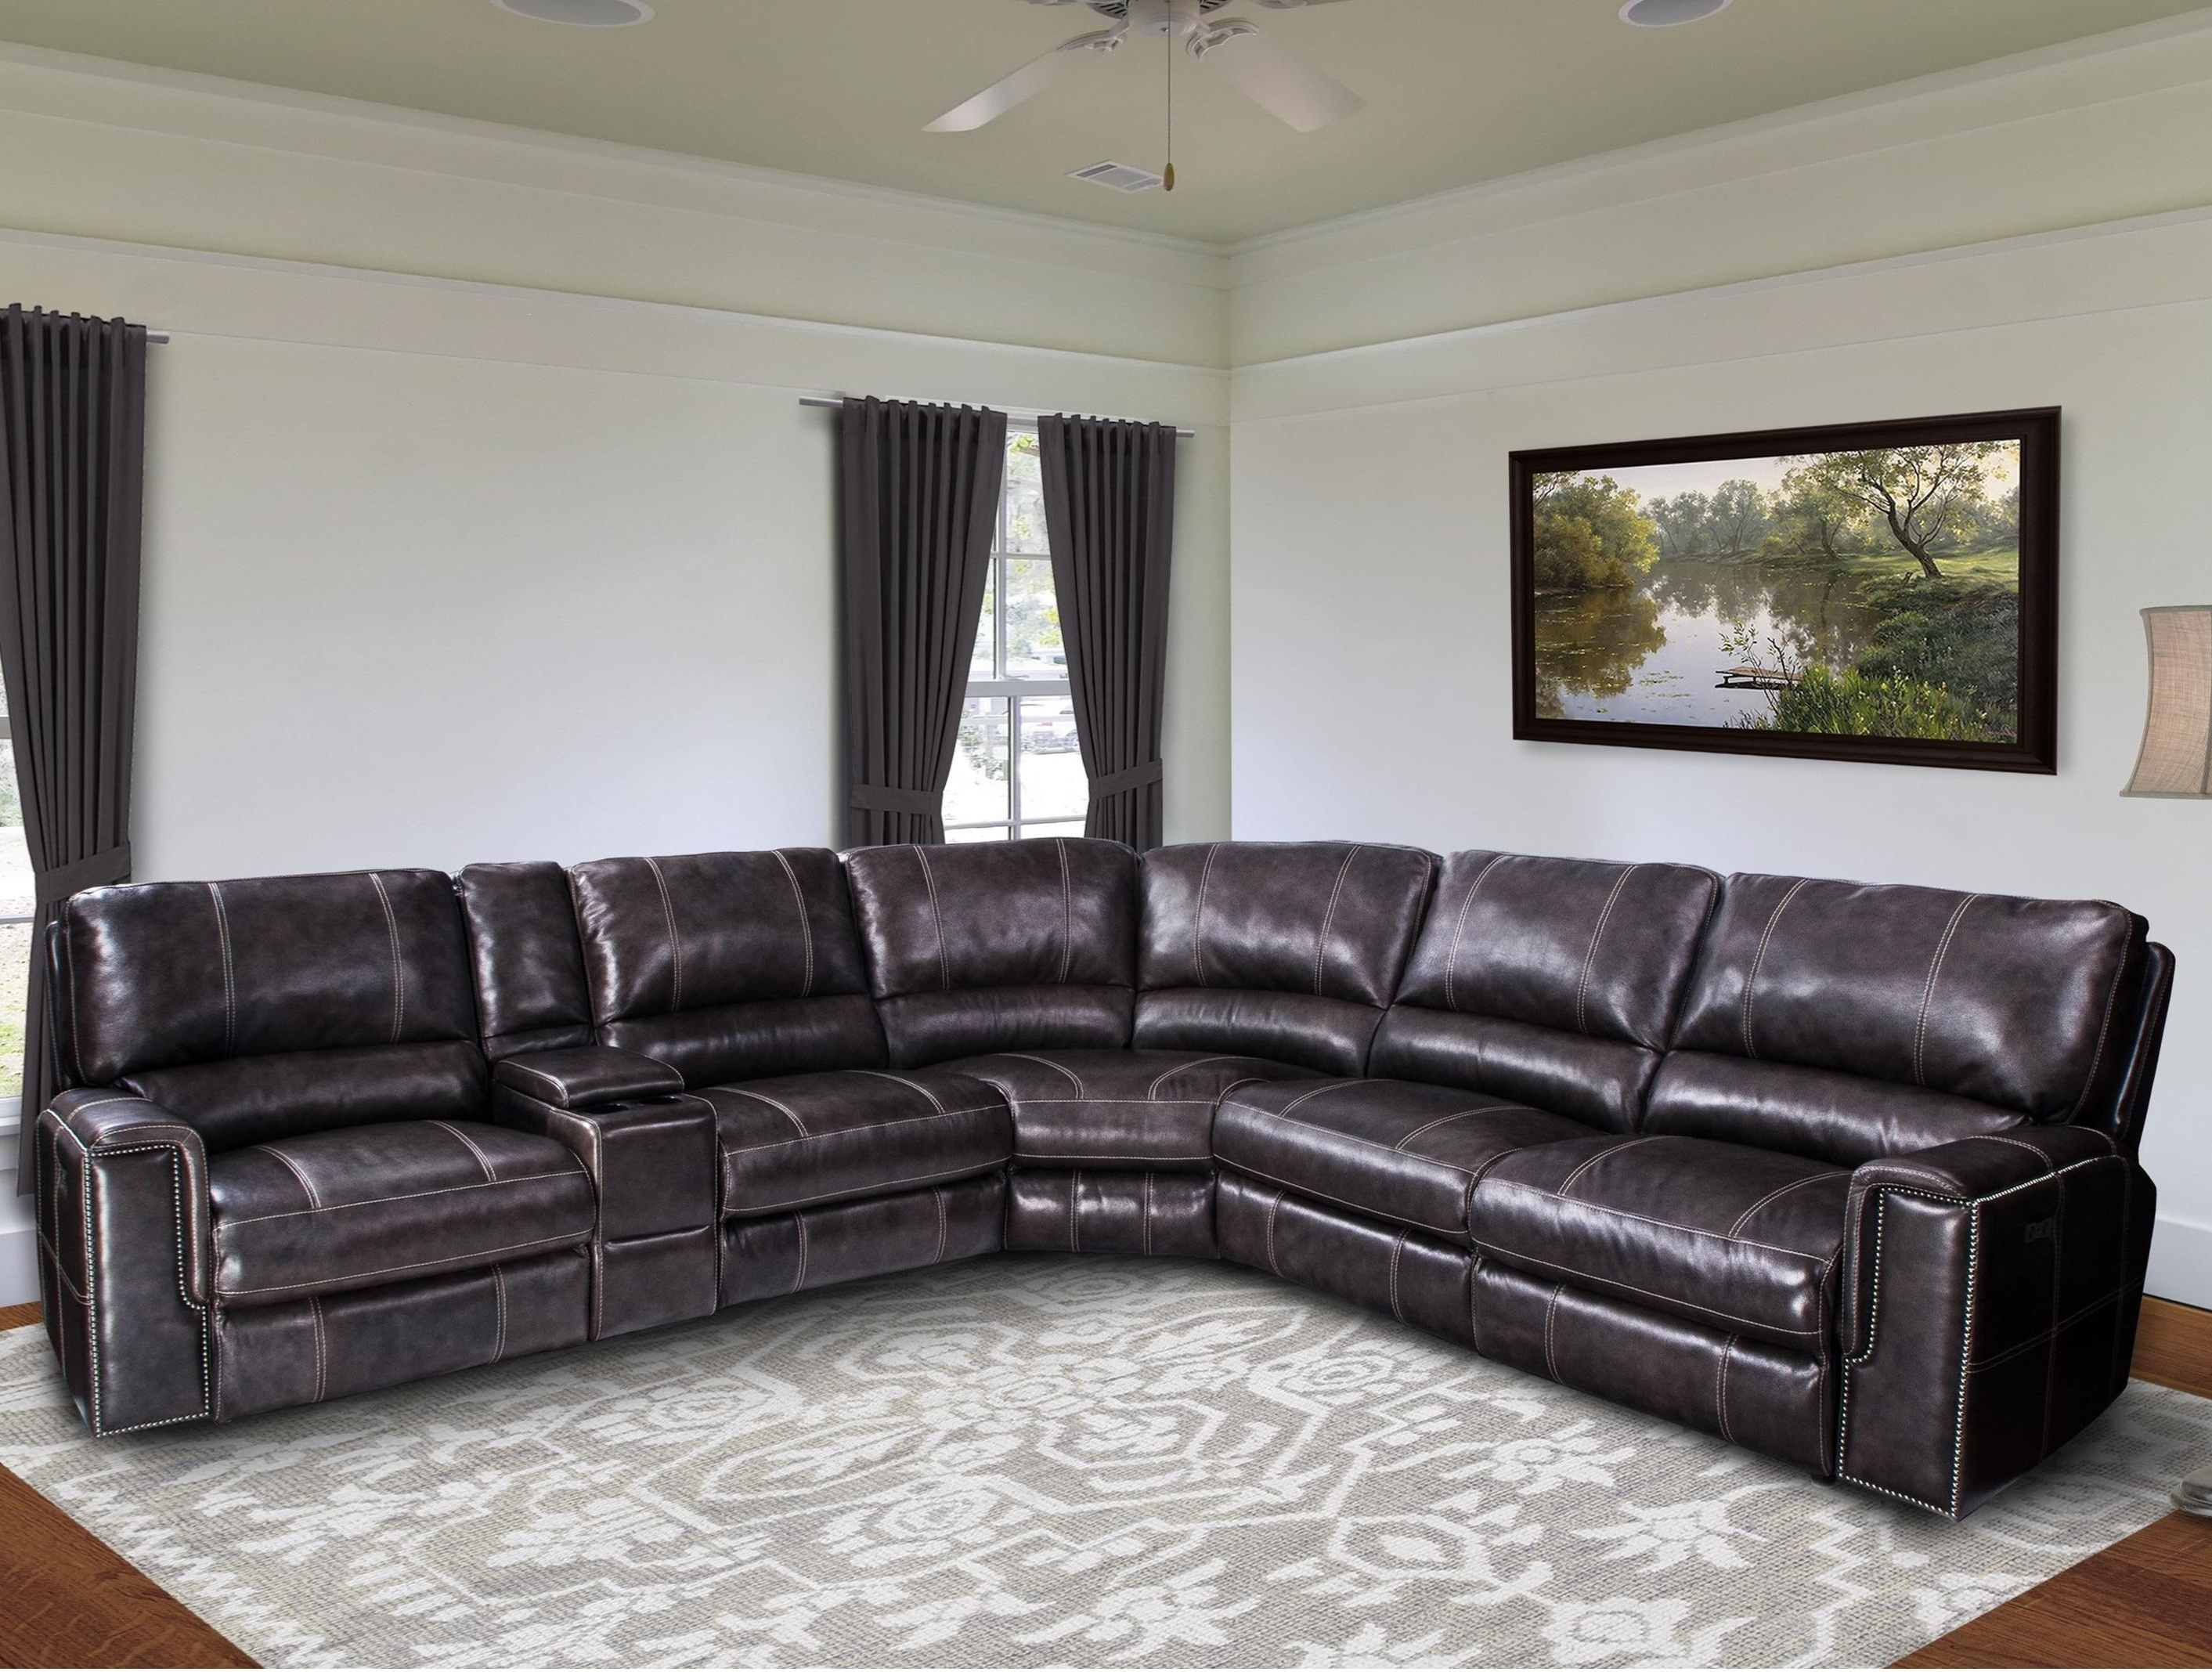 Newest Jerome's Sectional Sofas For Jerome Casual Power Reclining Sectional Sofa With Power Headrests (View 10 of 15)